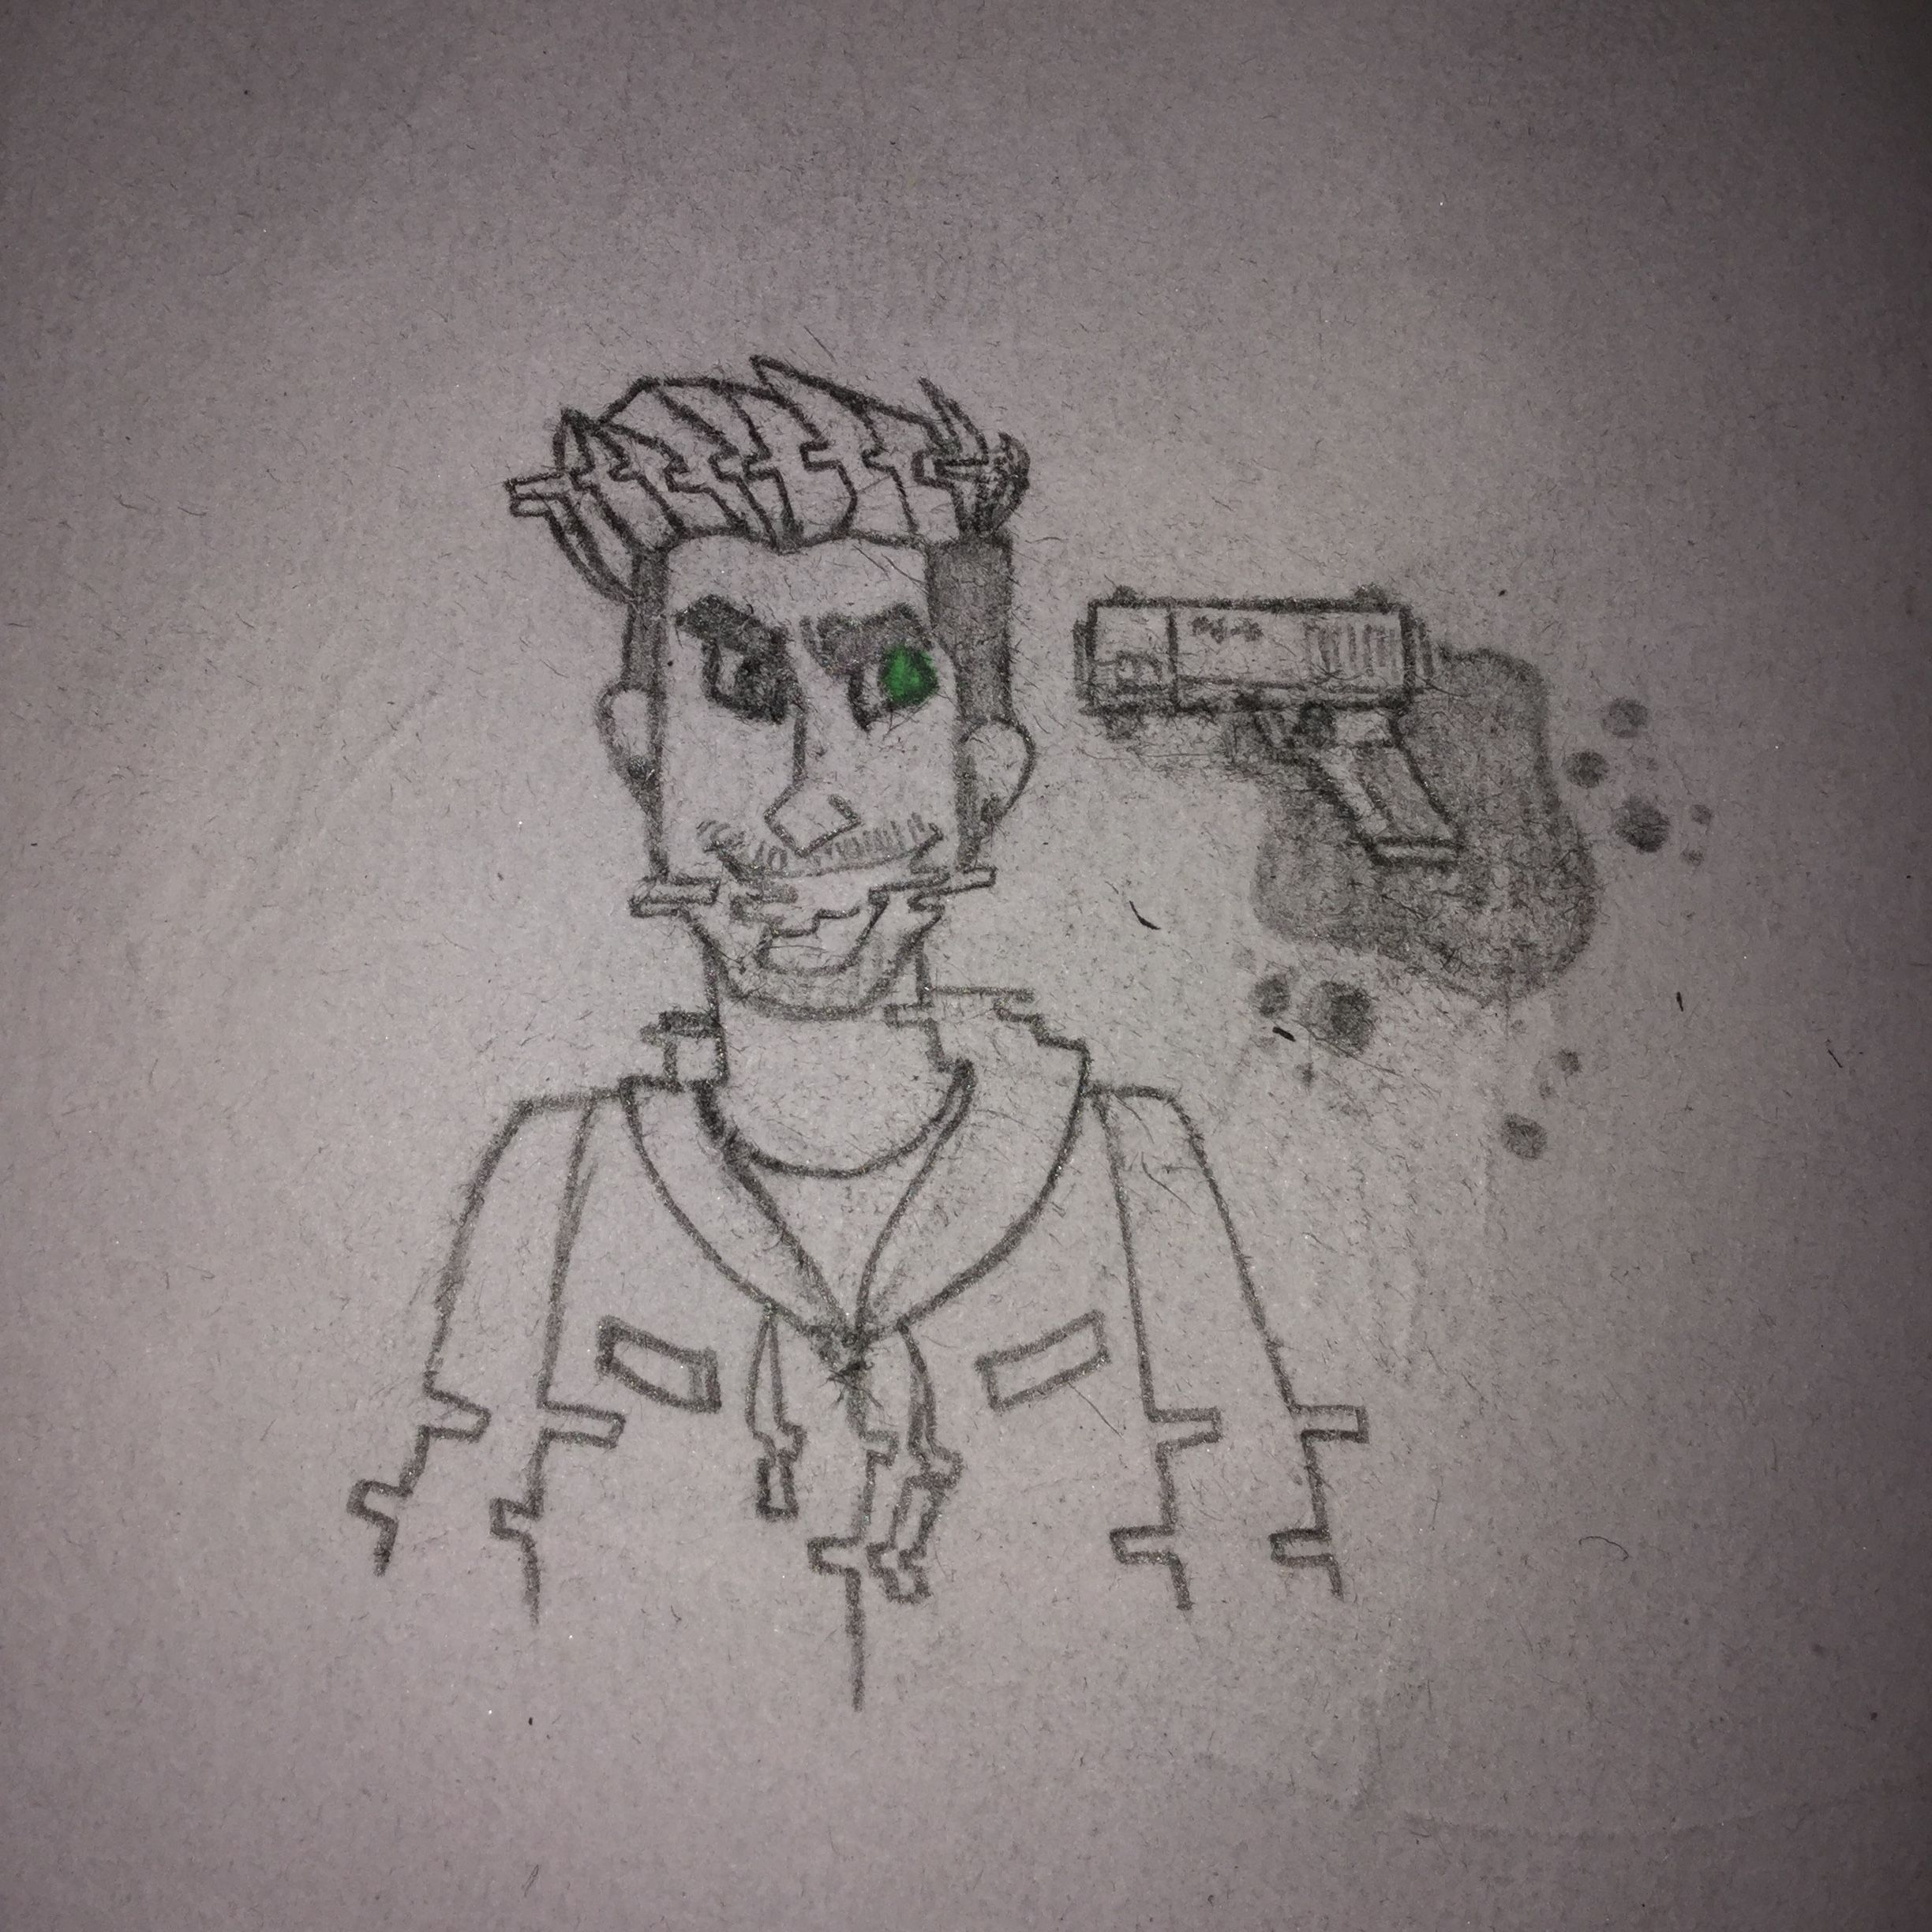 AntiSepticEye glitching out. Yes I did draw this with my own design/idea but this type/style is not mine. THX LOVIES XD